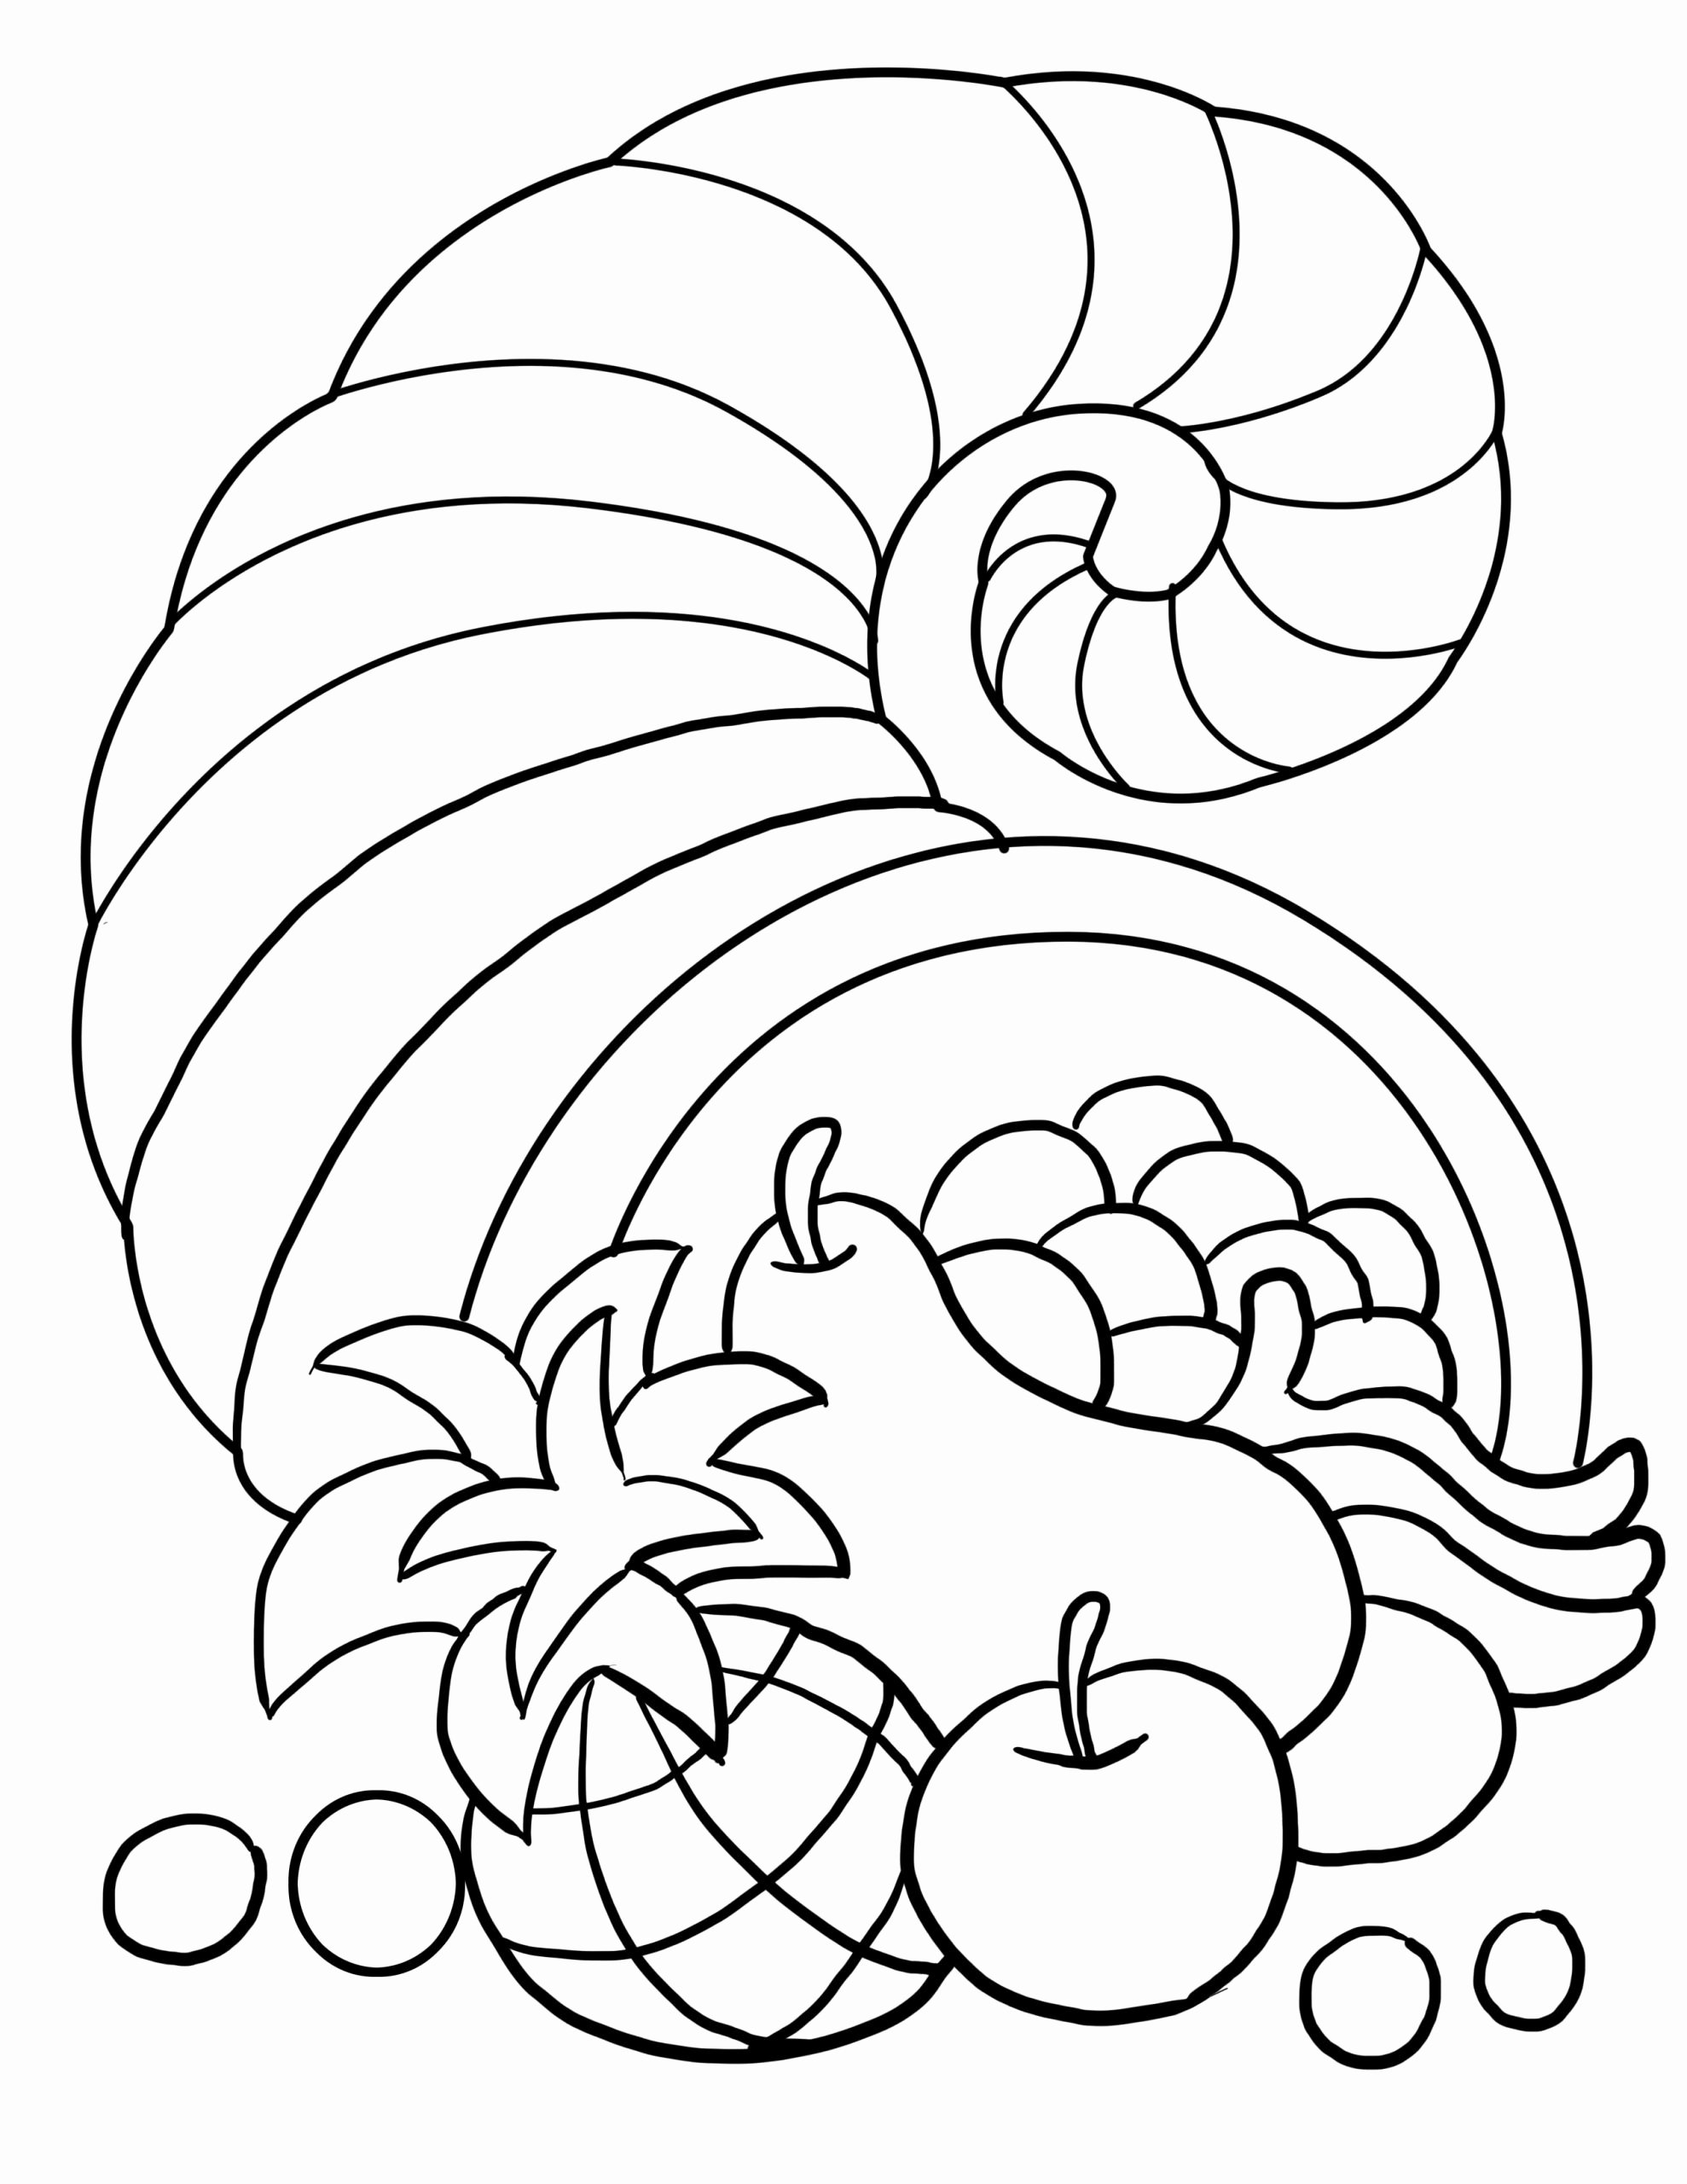 Thanksgiving Coloring Worksheets for Preschoolers Inspirational Fantastic Free Printable Thanksgiving Coloring Pages Image